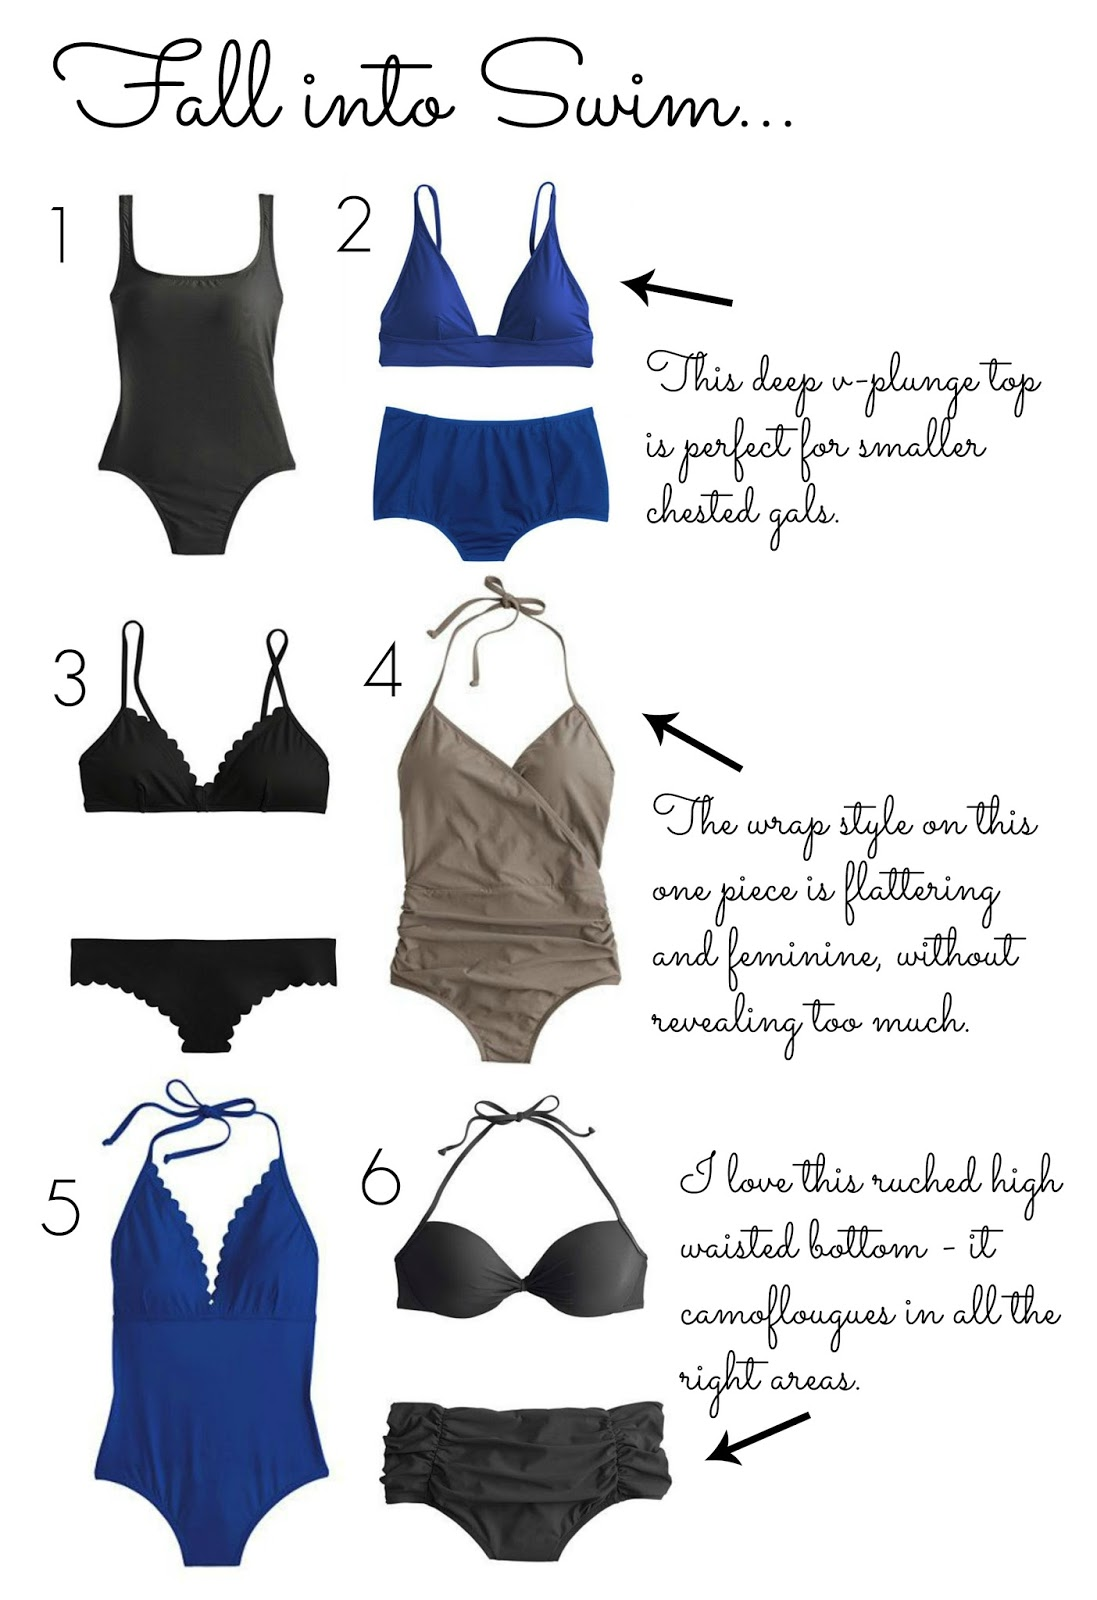 j.crew bathing suit - j.crew one piece - j.crew scallop - j.crew high waisted - fall bathing suit - what to wear to beach in september